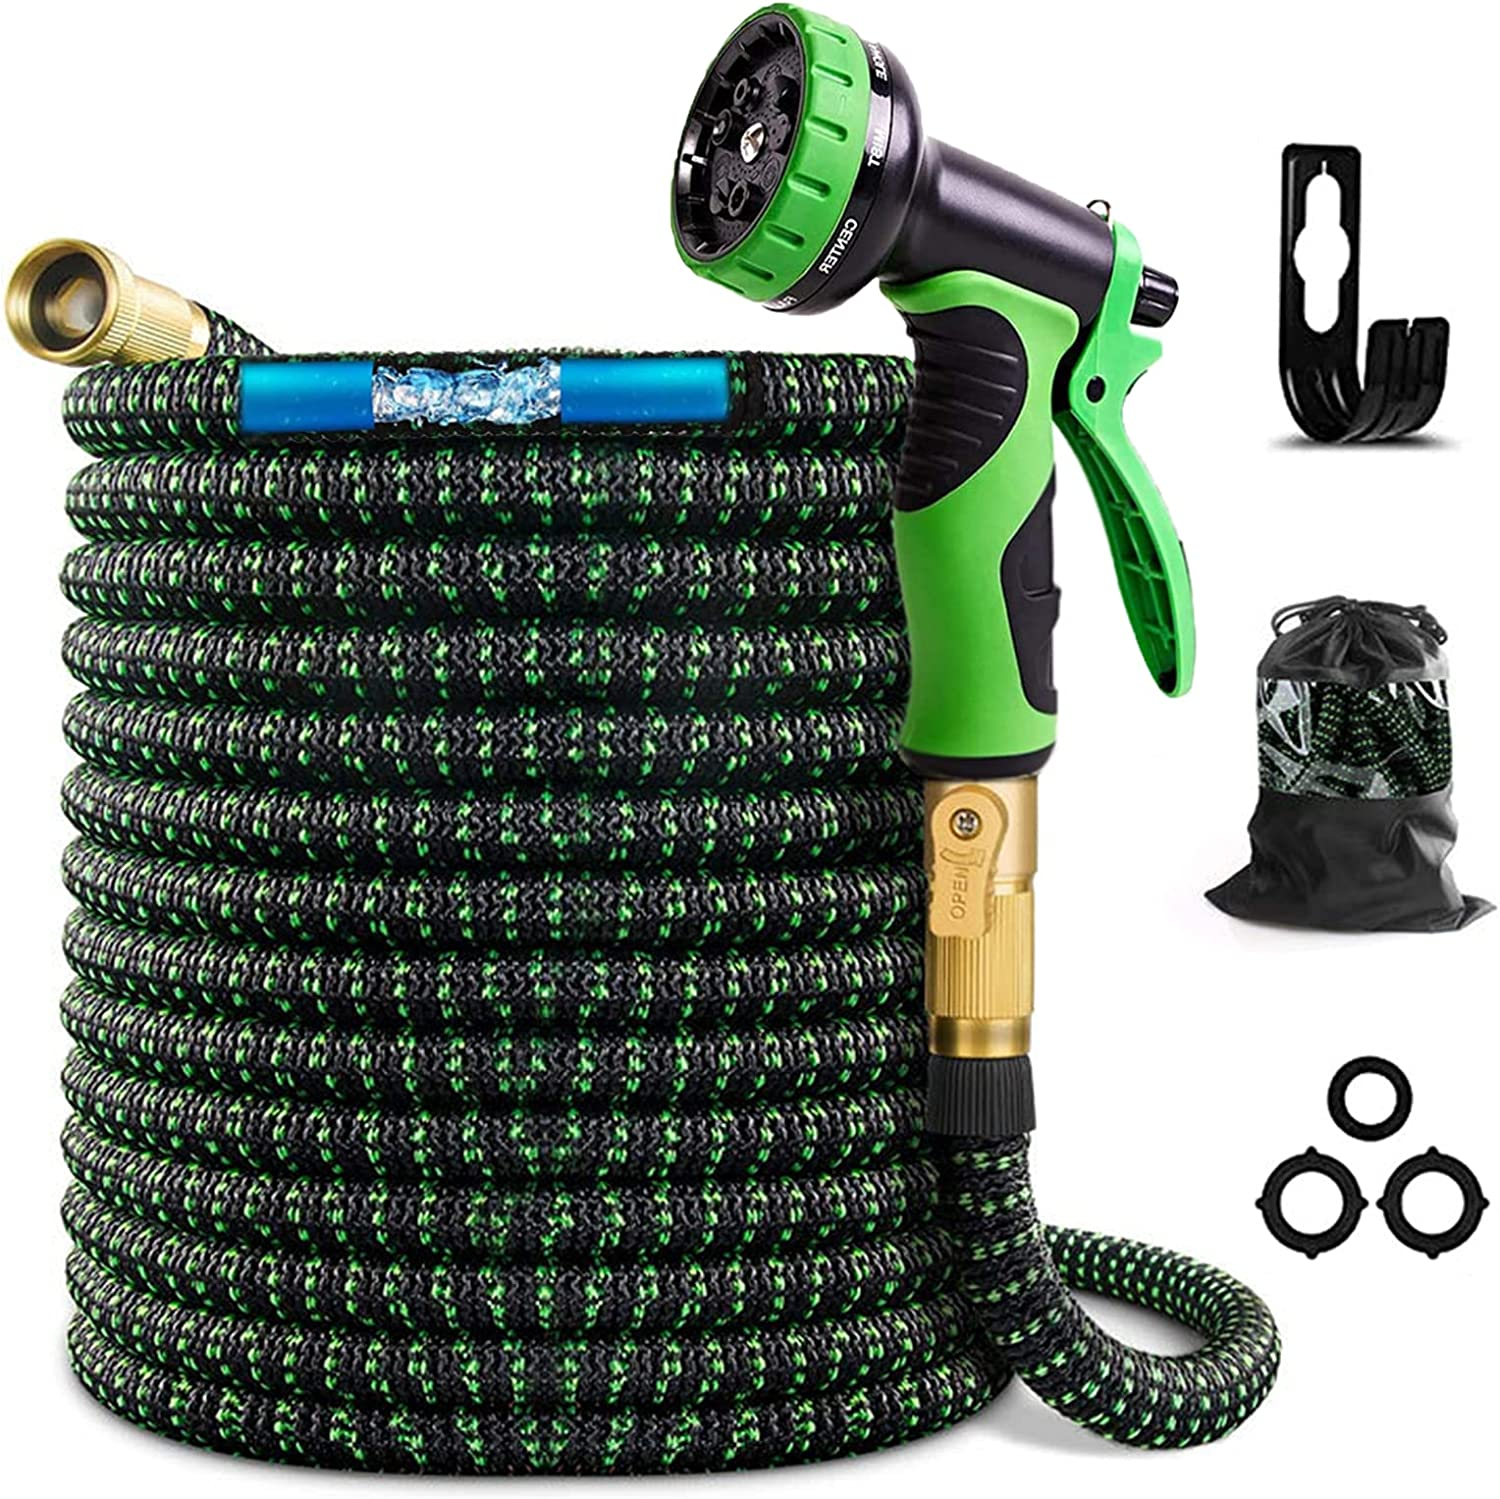 DuLaSeed Expandable Garden Hose 25FT, Flexible Water Hose with 10 Function Sprayer Nozzle and 3/4